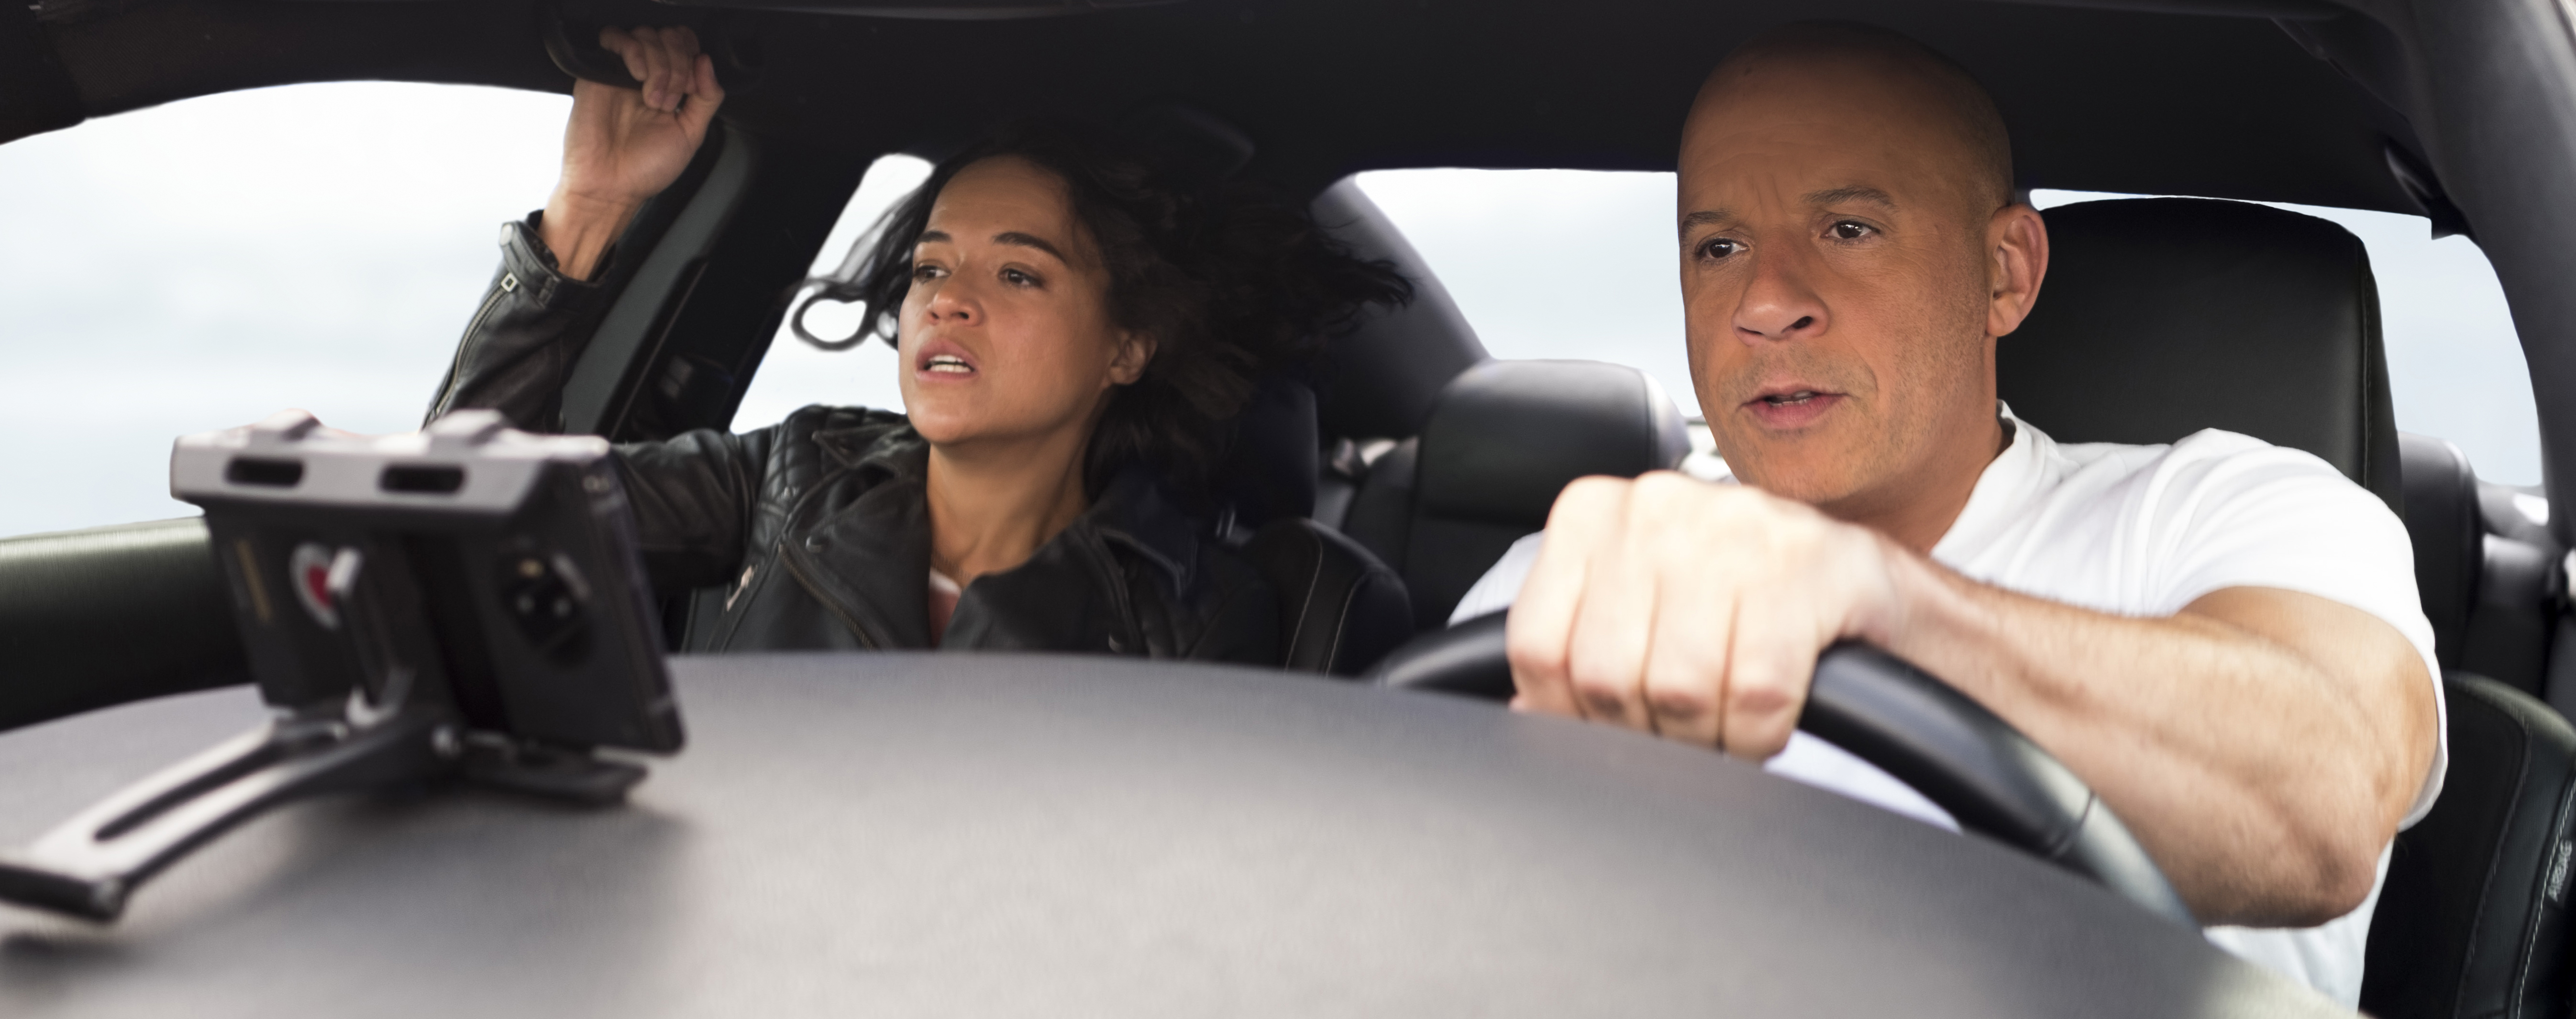 Dom drives while Letty hangs on for dear life.